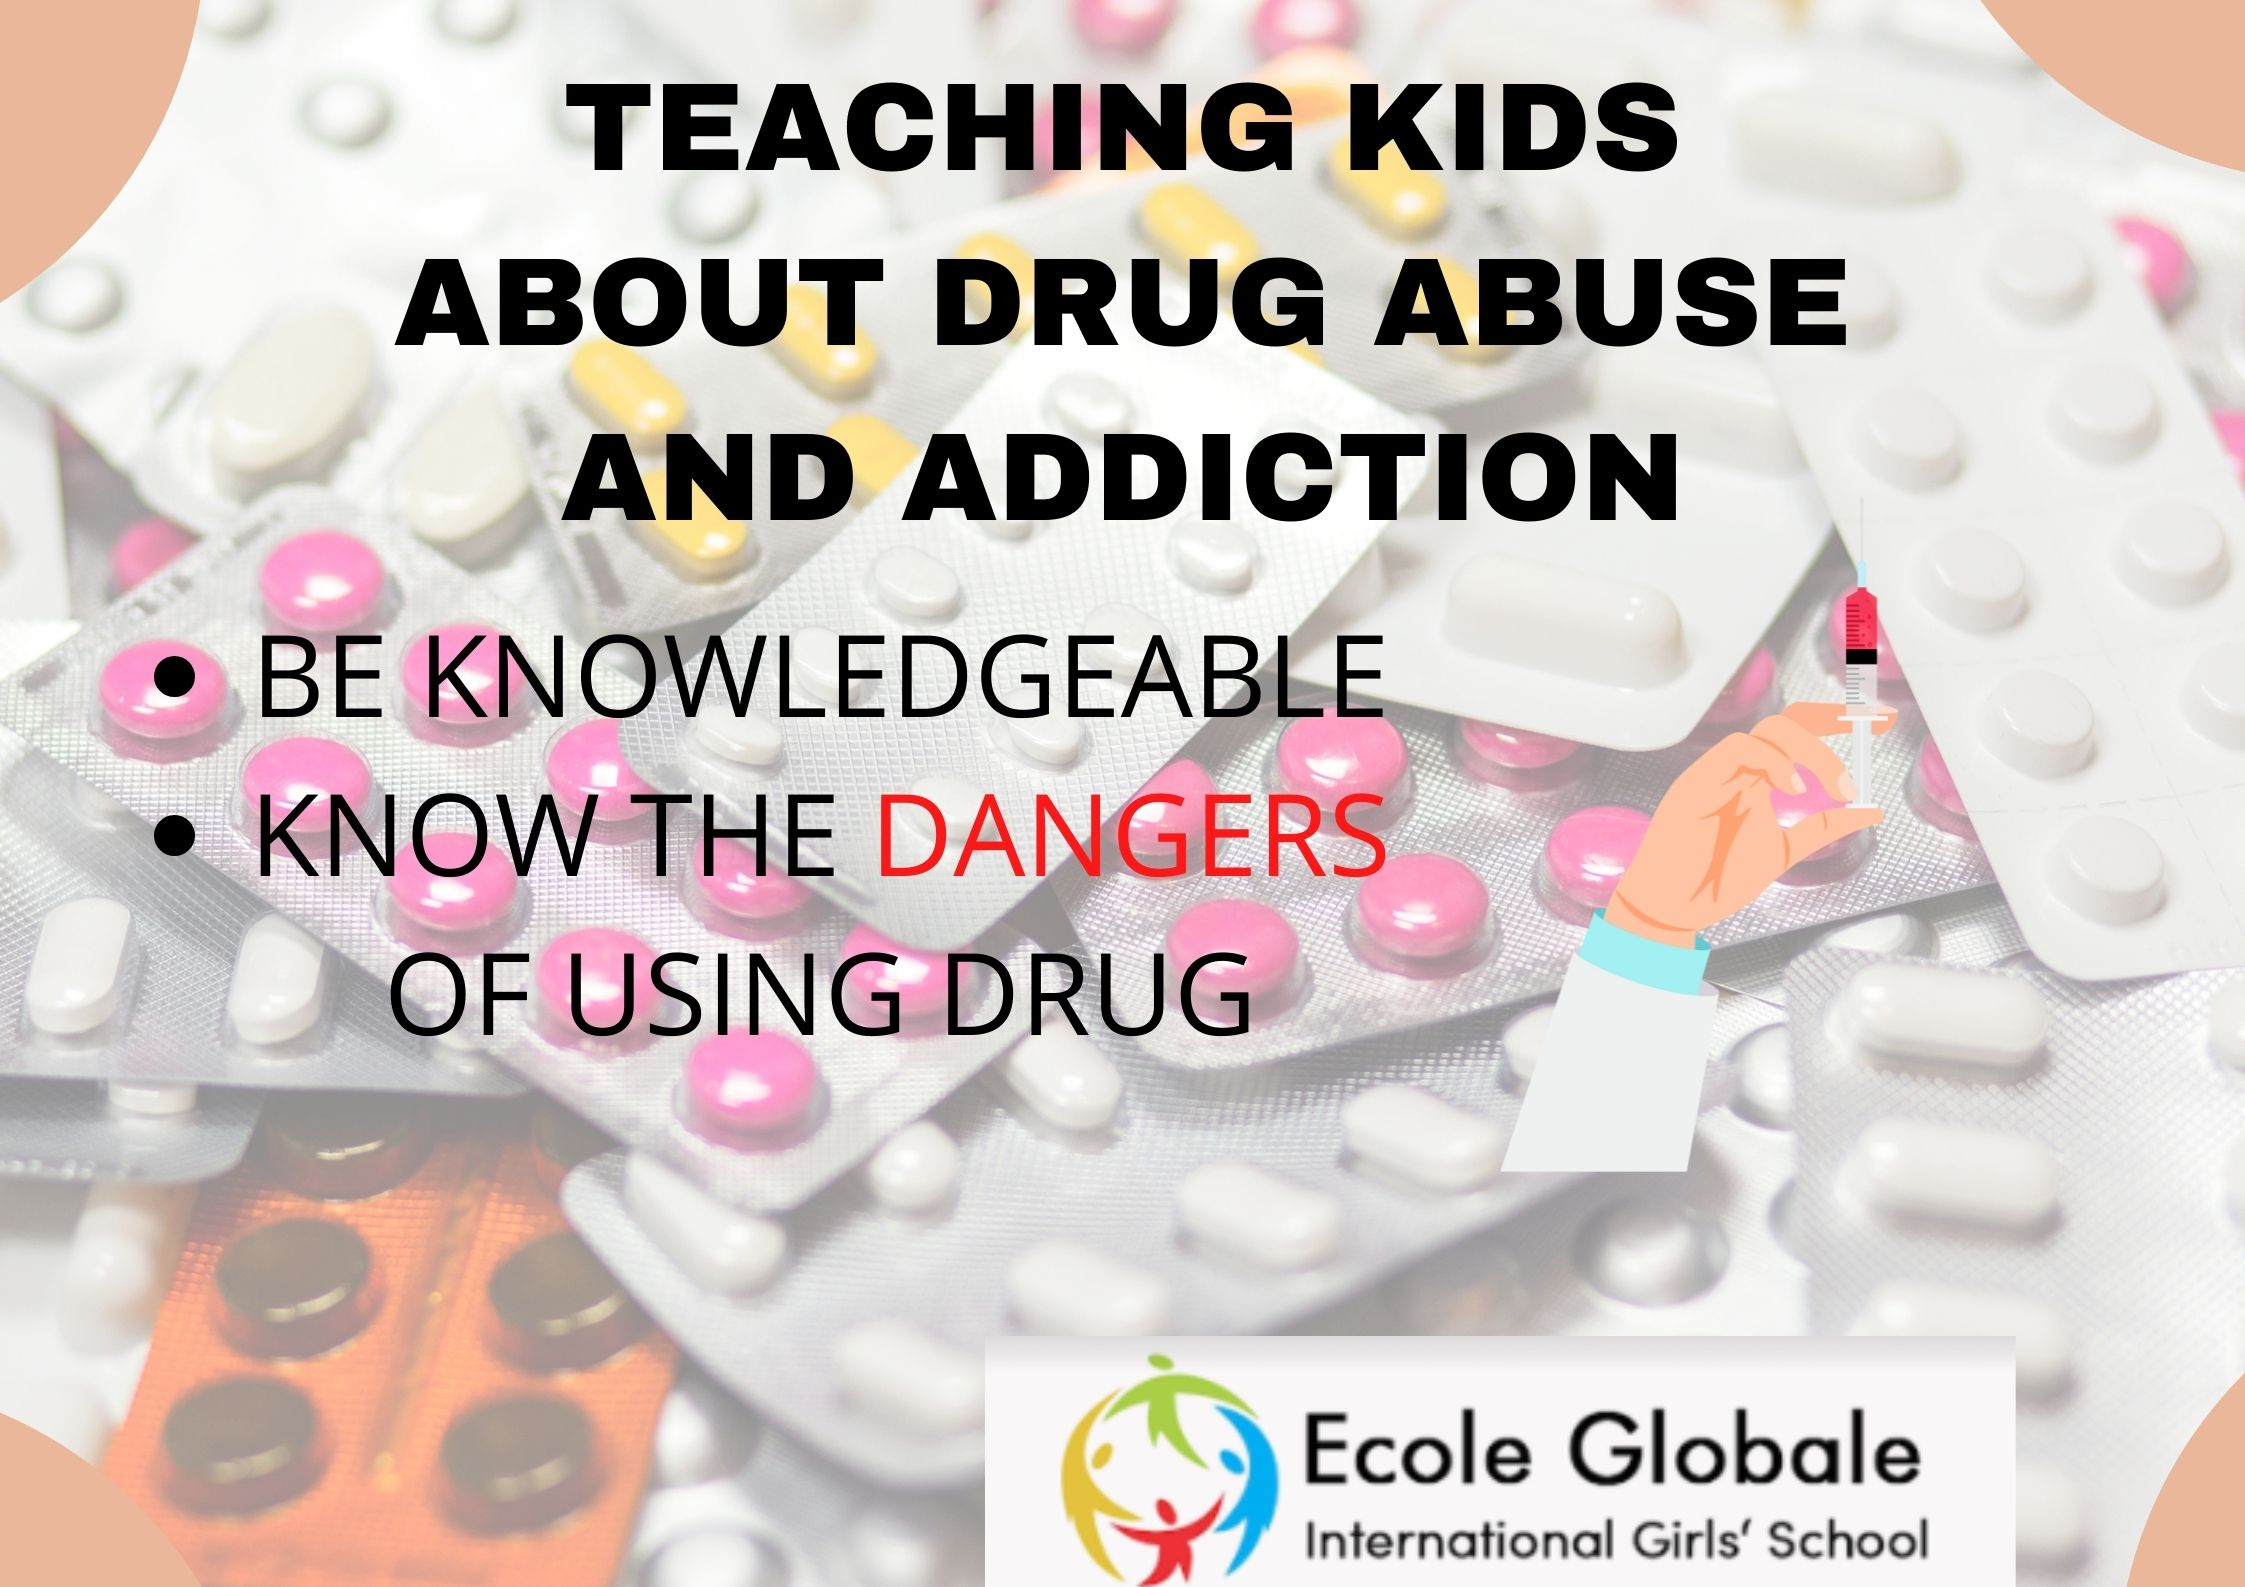 HOW TO TEACH KIDS ABOUT DRUG ABUSE AND ADDICTION